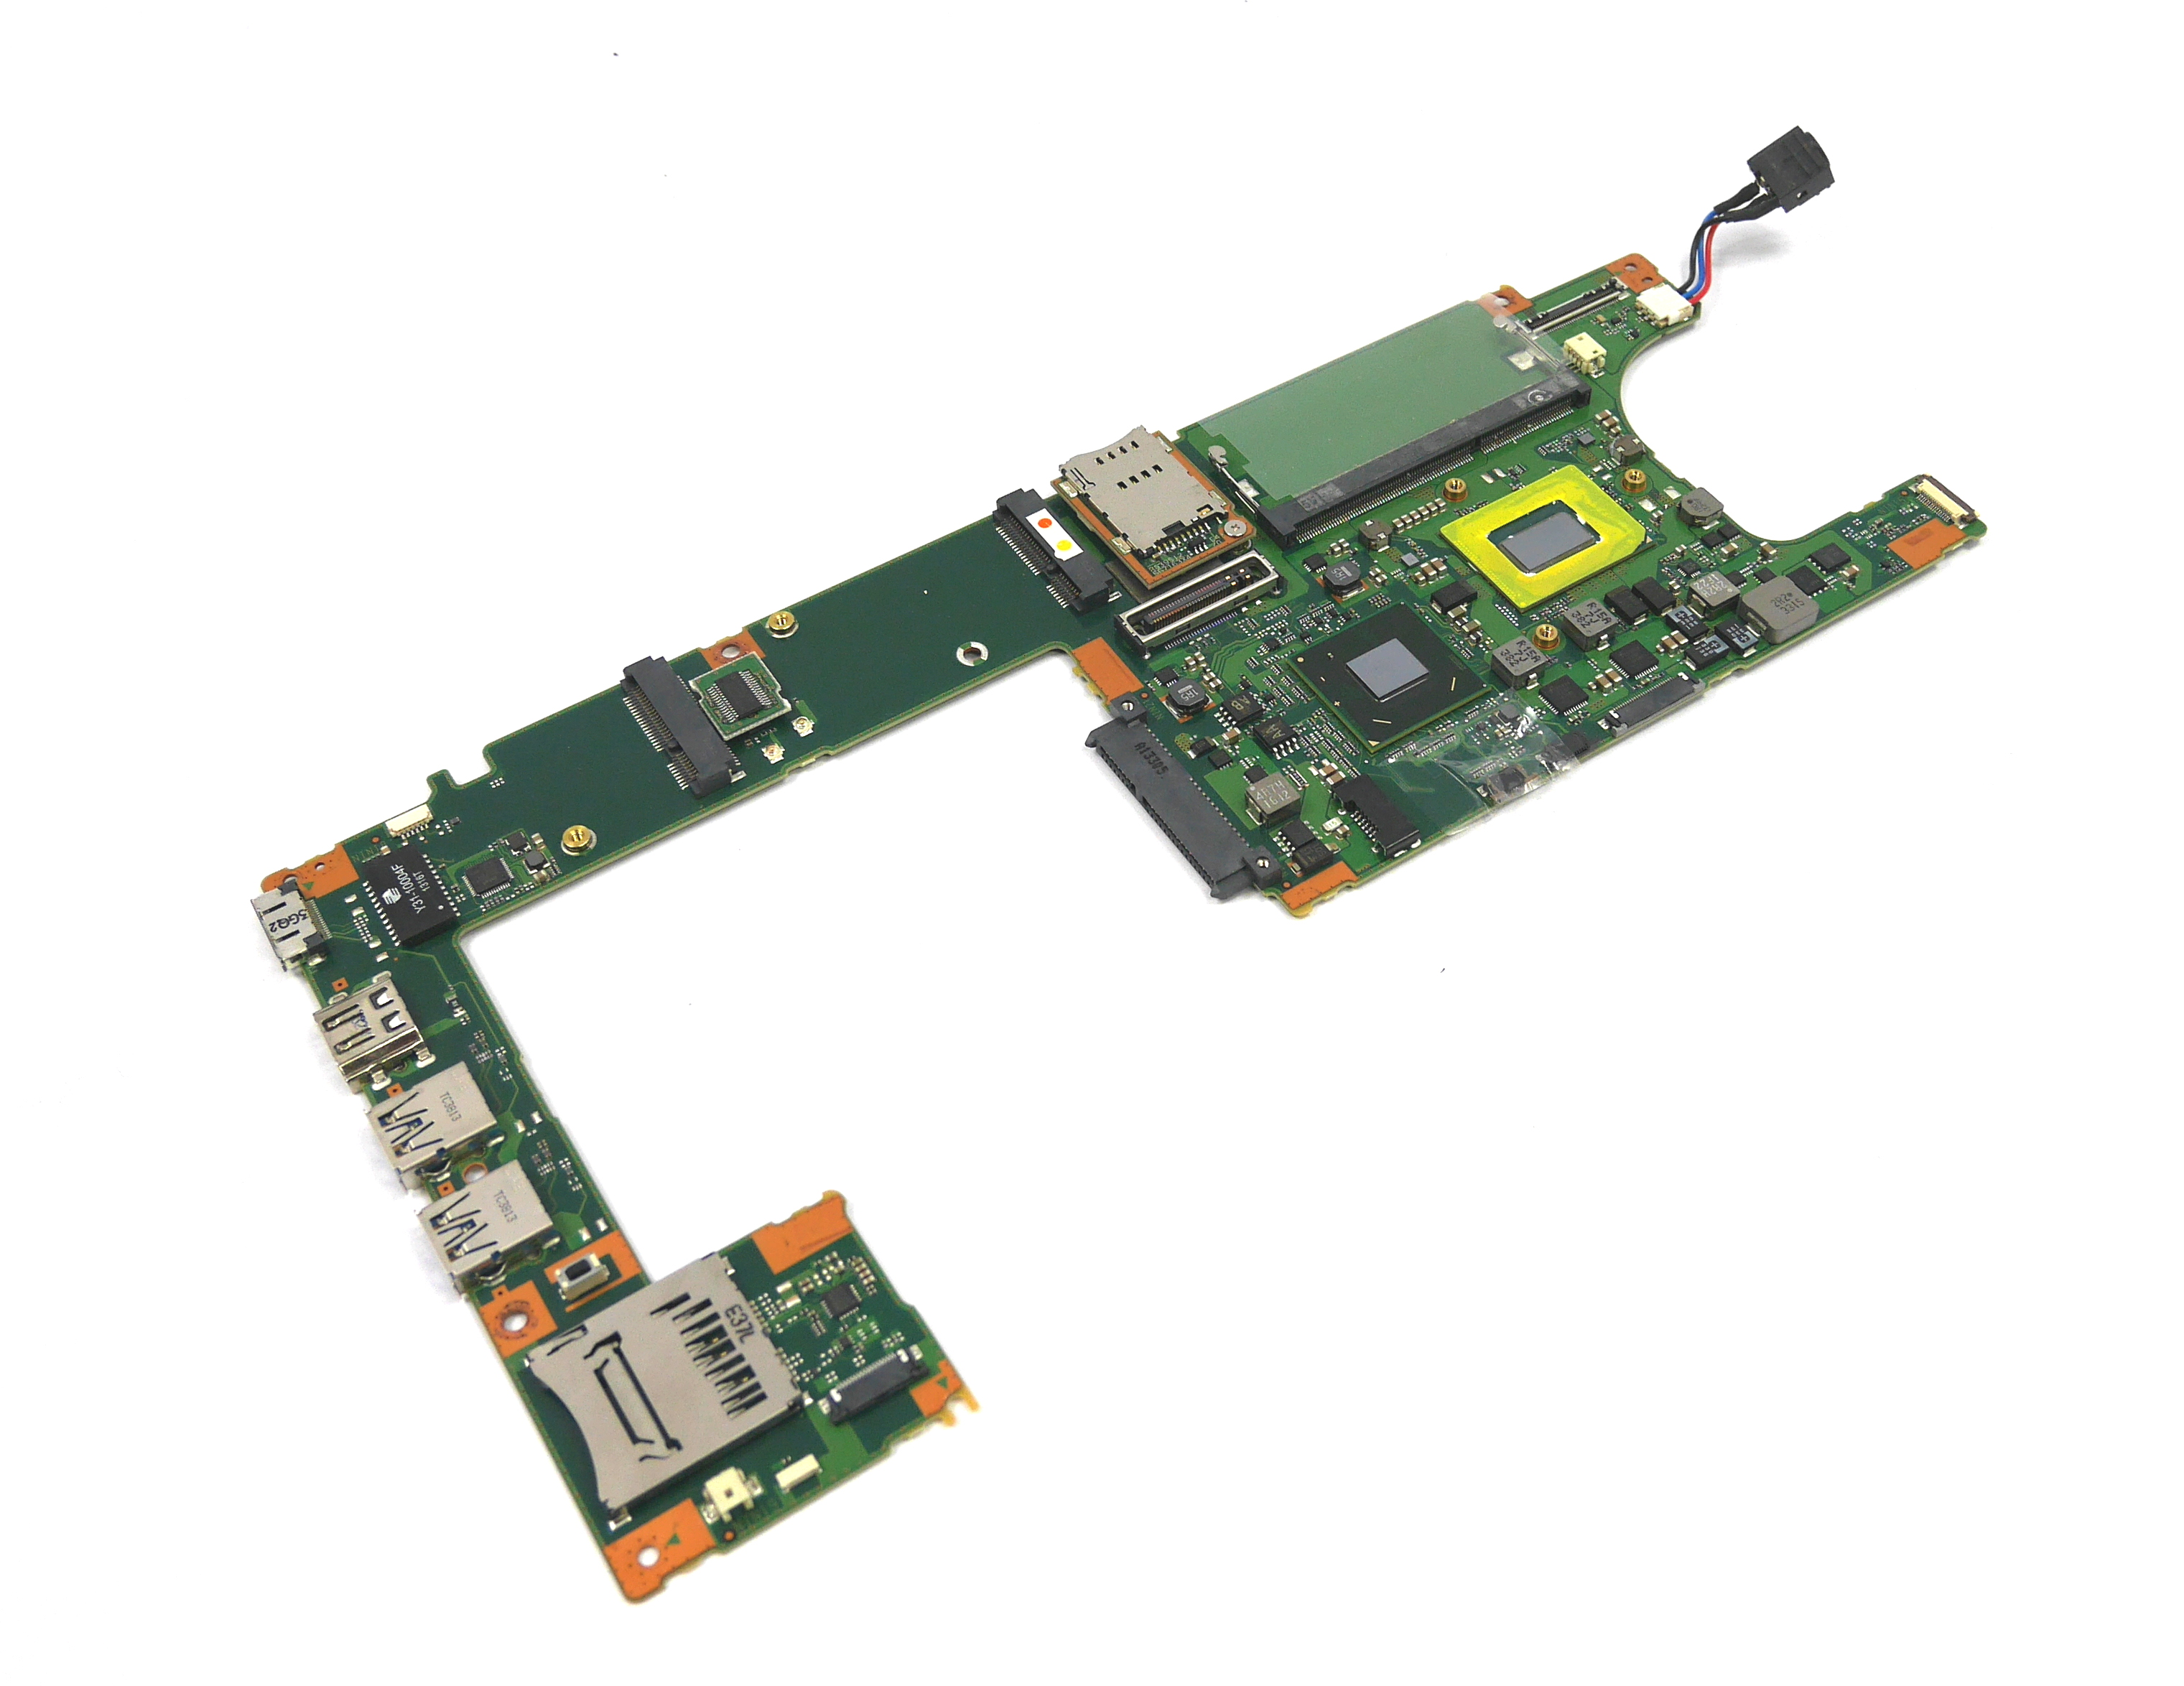 Fujitsu CP567110-Z4 LifeBook U772 Motherboard with i7-3687U Processor